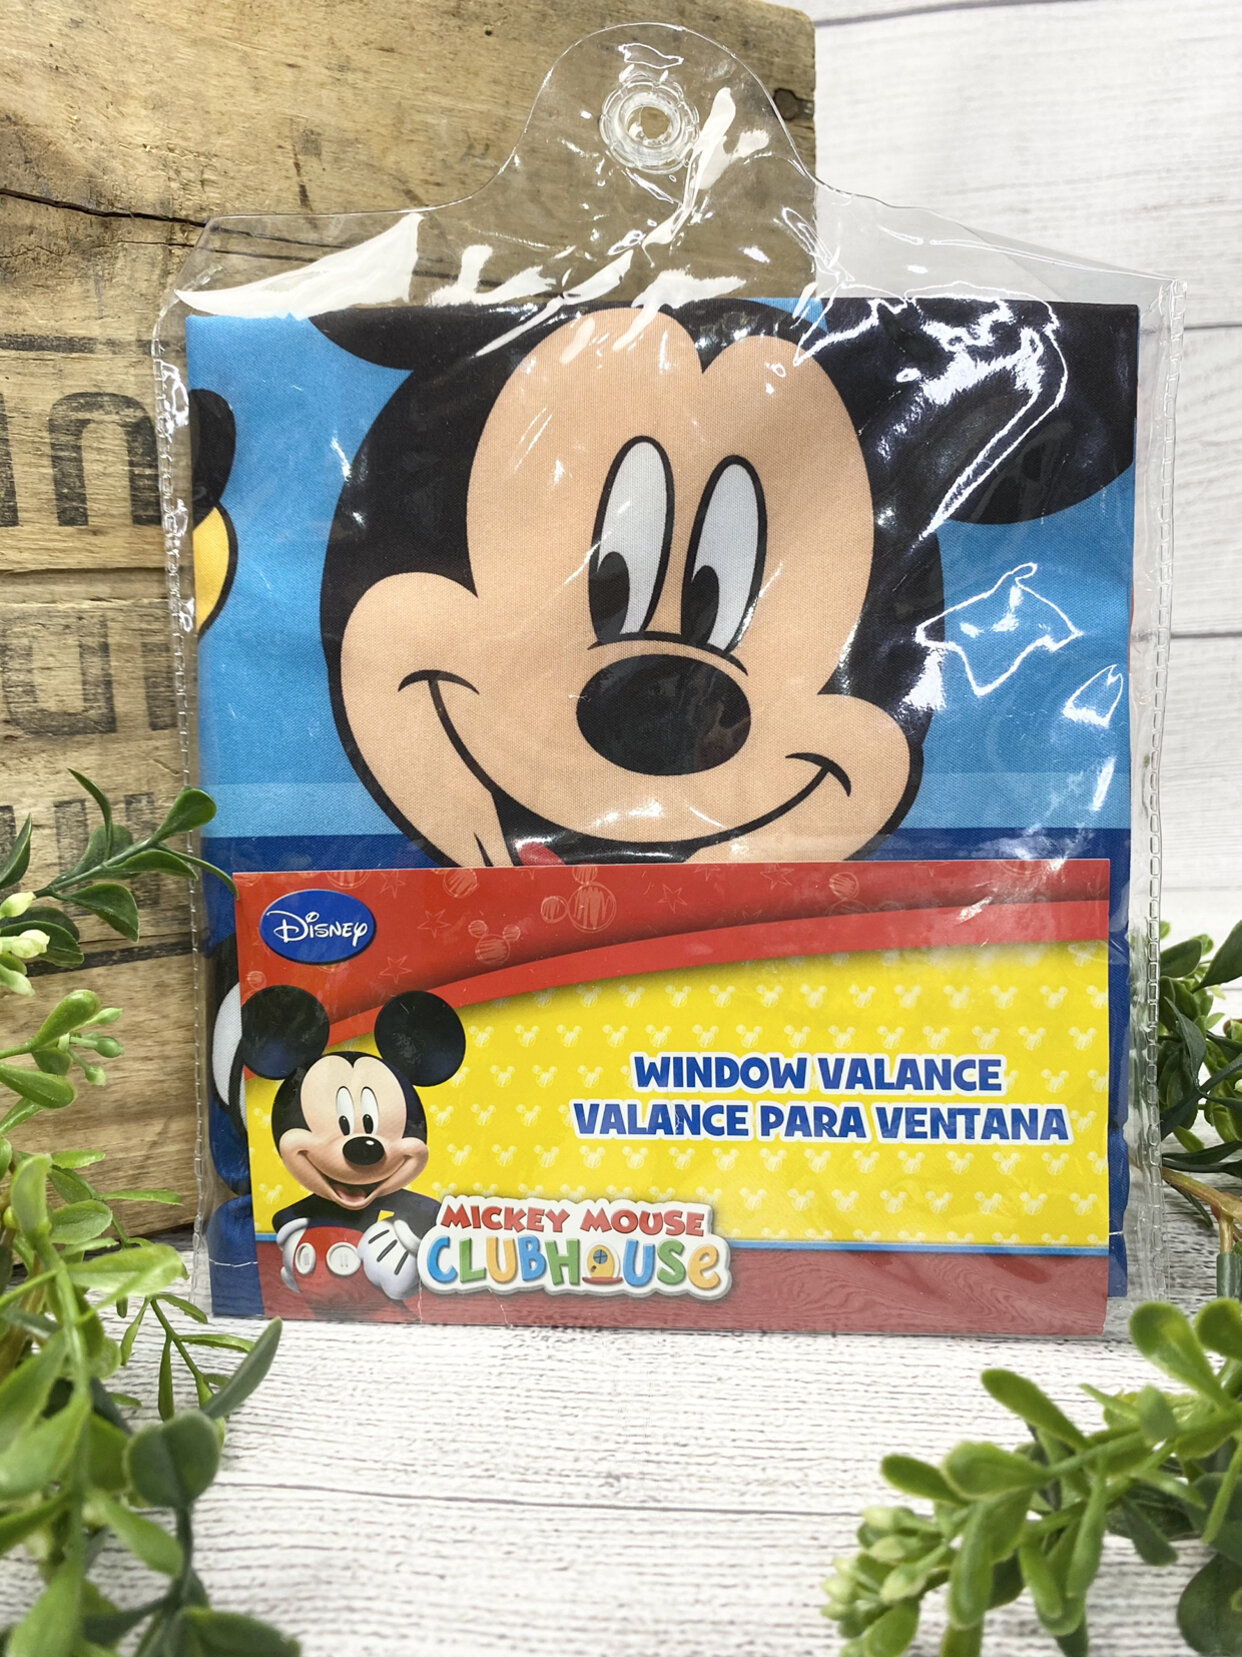 New Mickey Mouse Club House Valance